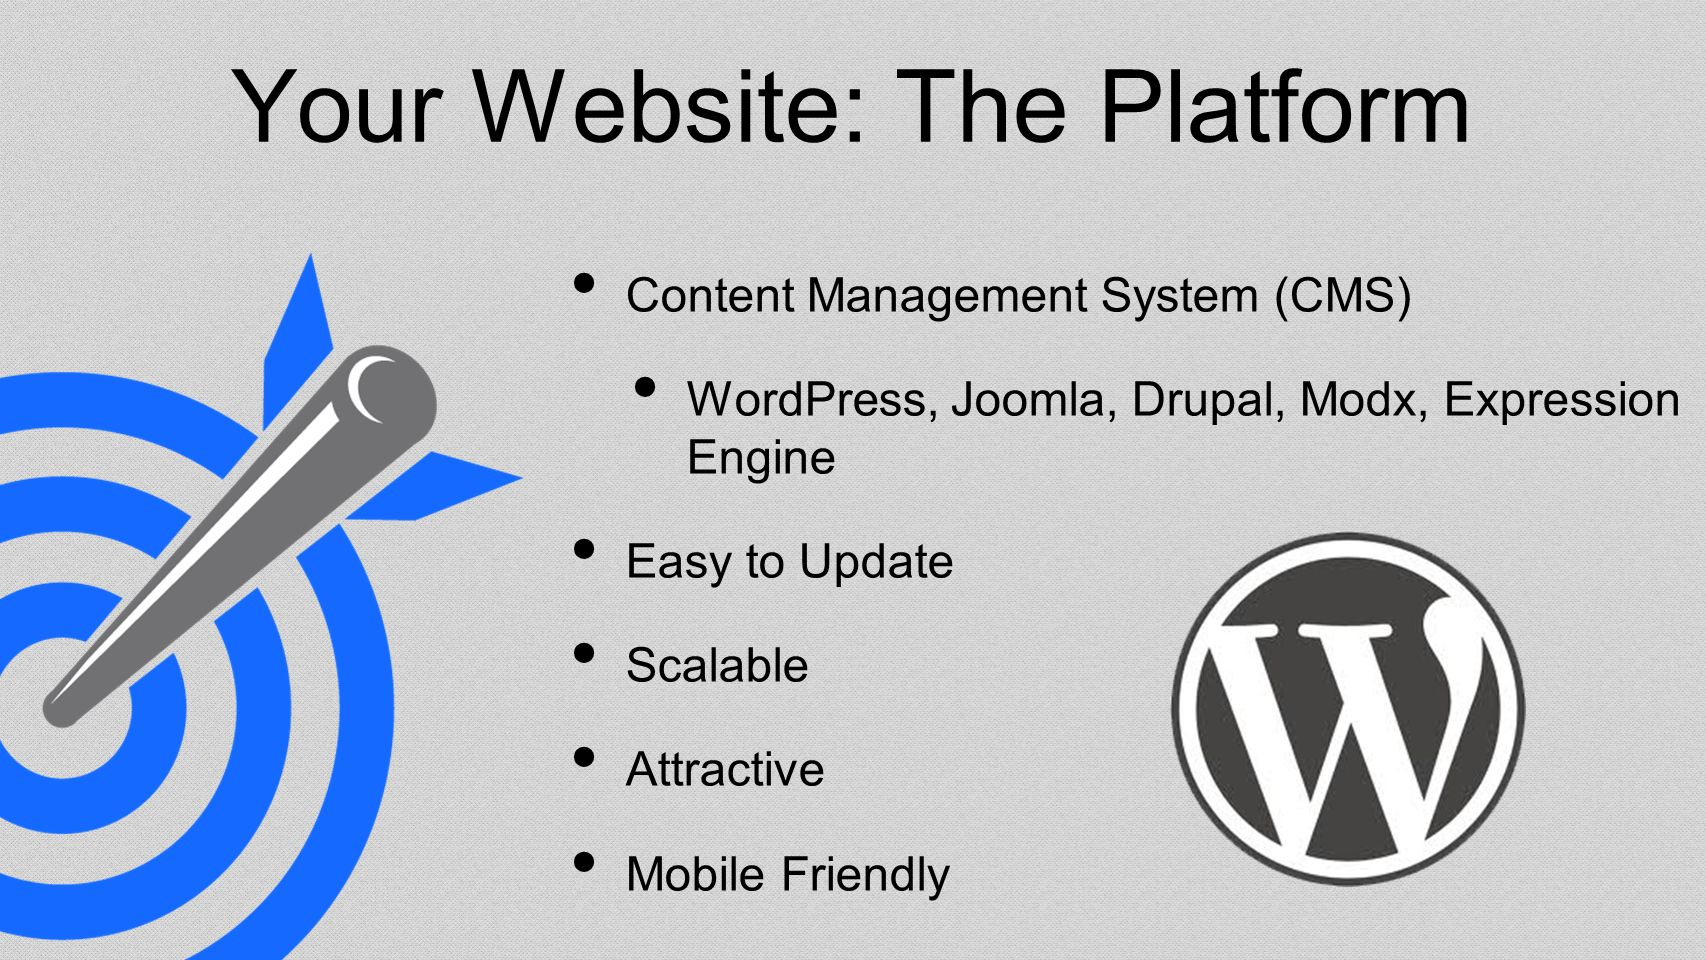 Your Website: The Platform Content Management System (CMS) WordPress, Joomla, Drupal, Modx, Expression Engine Easy to Update Scalable Attractive Mobile Friendly